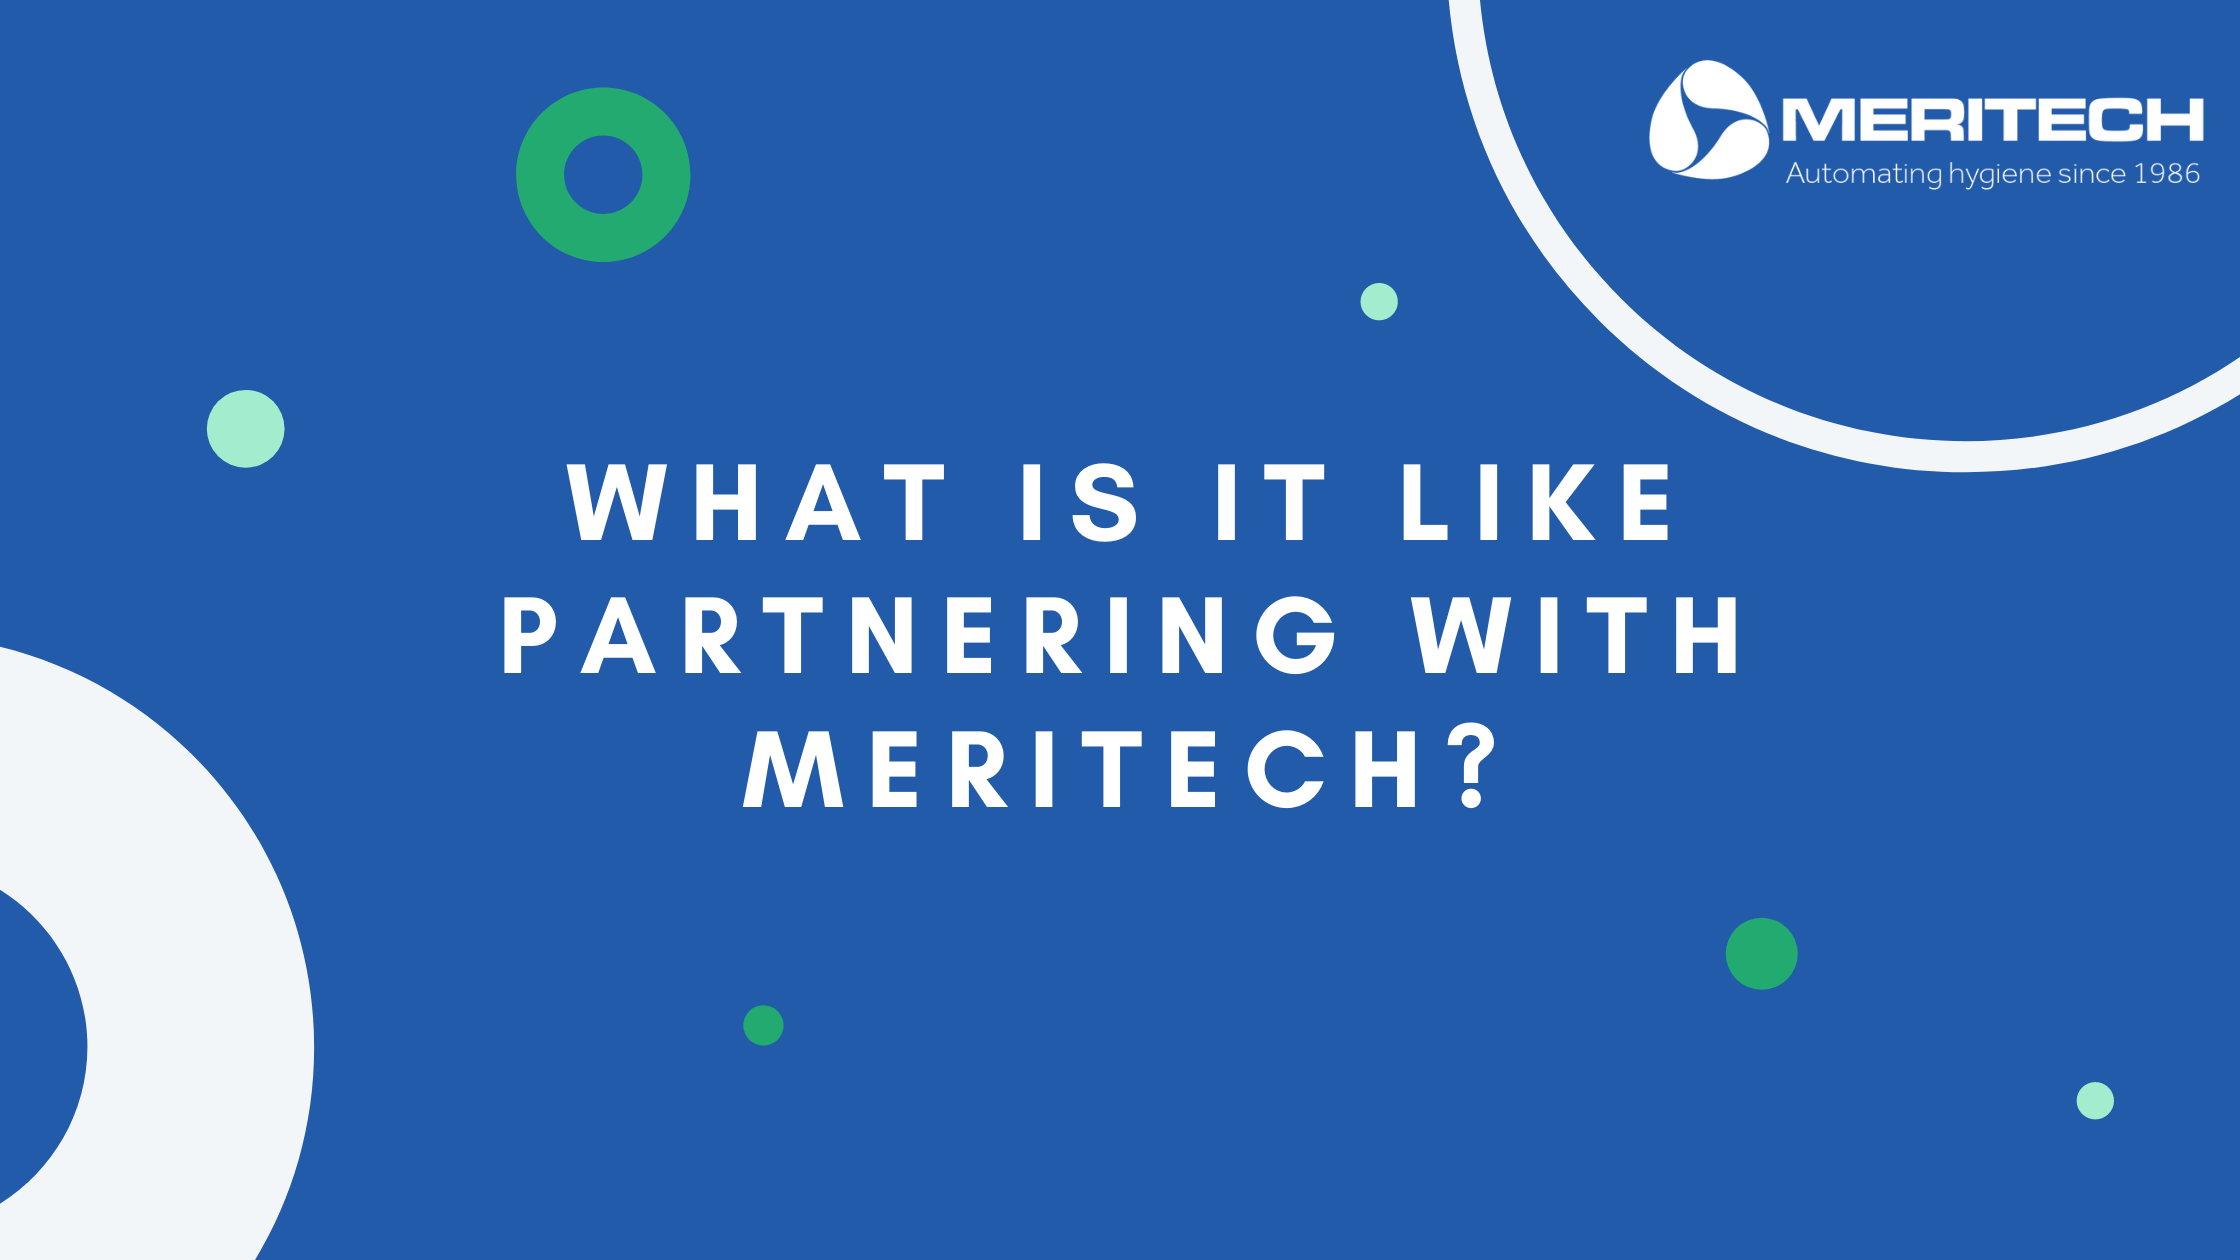 What is it like partnering with Meritech?